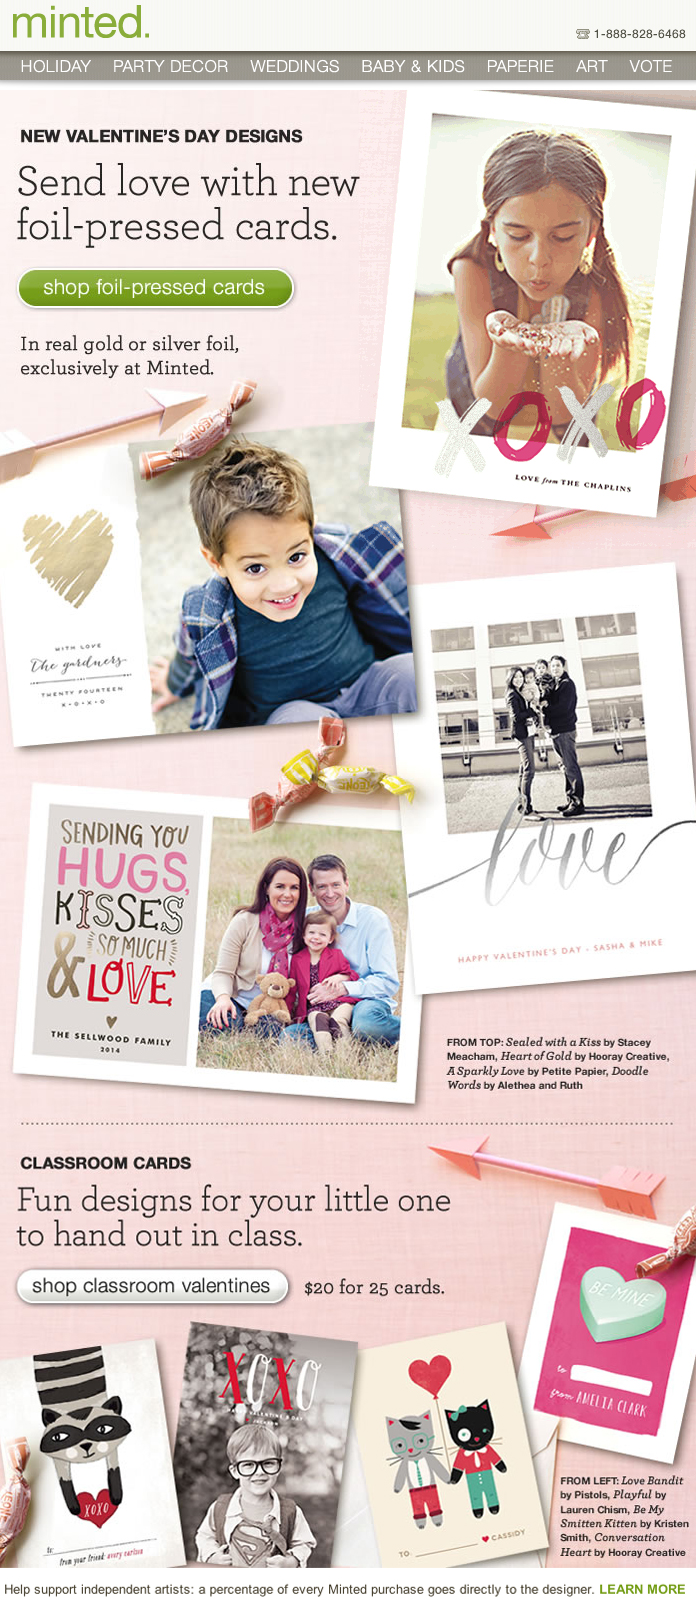 Foil-presed Valentine's Day Photo Cards